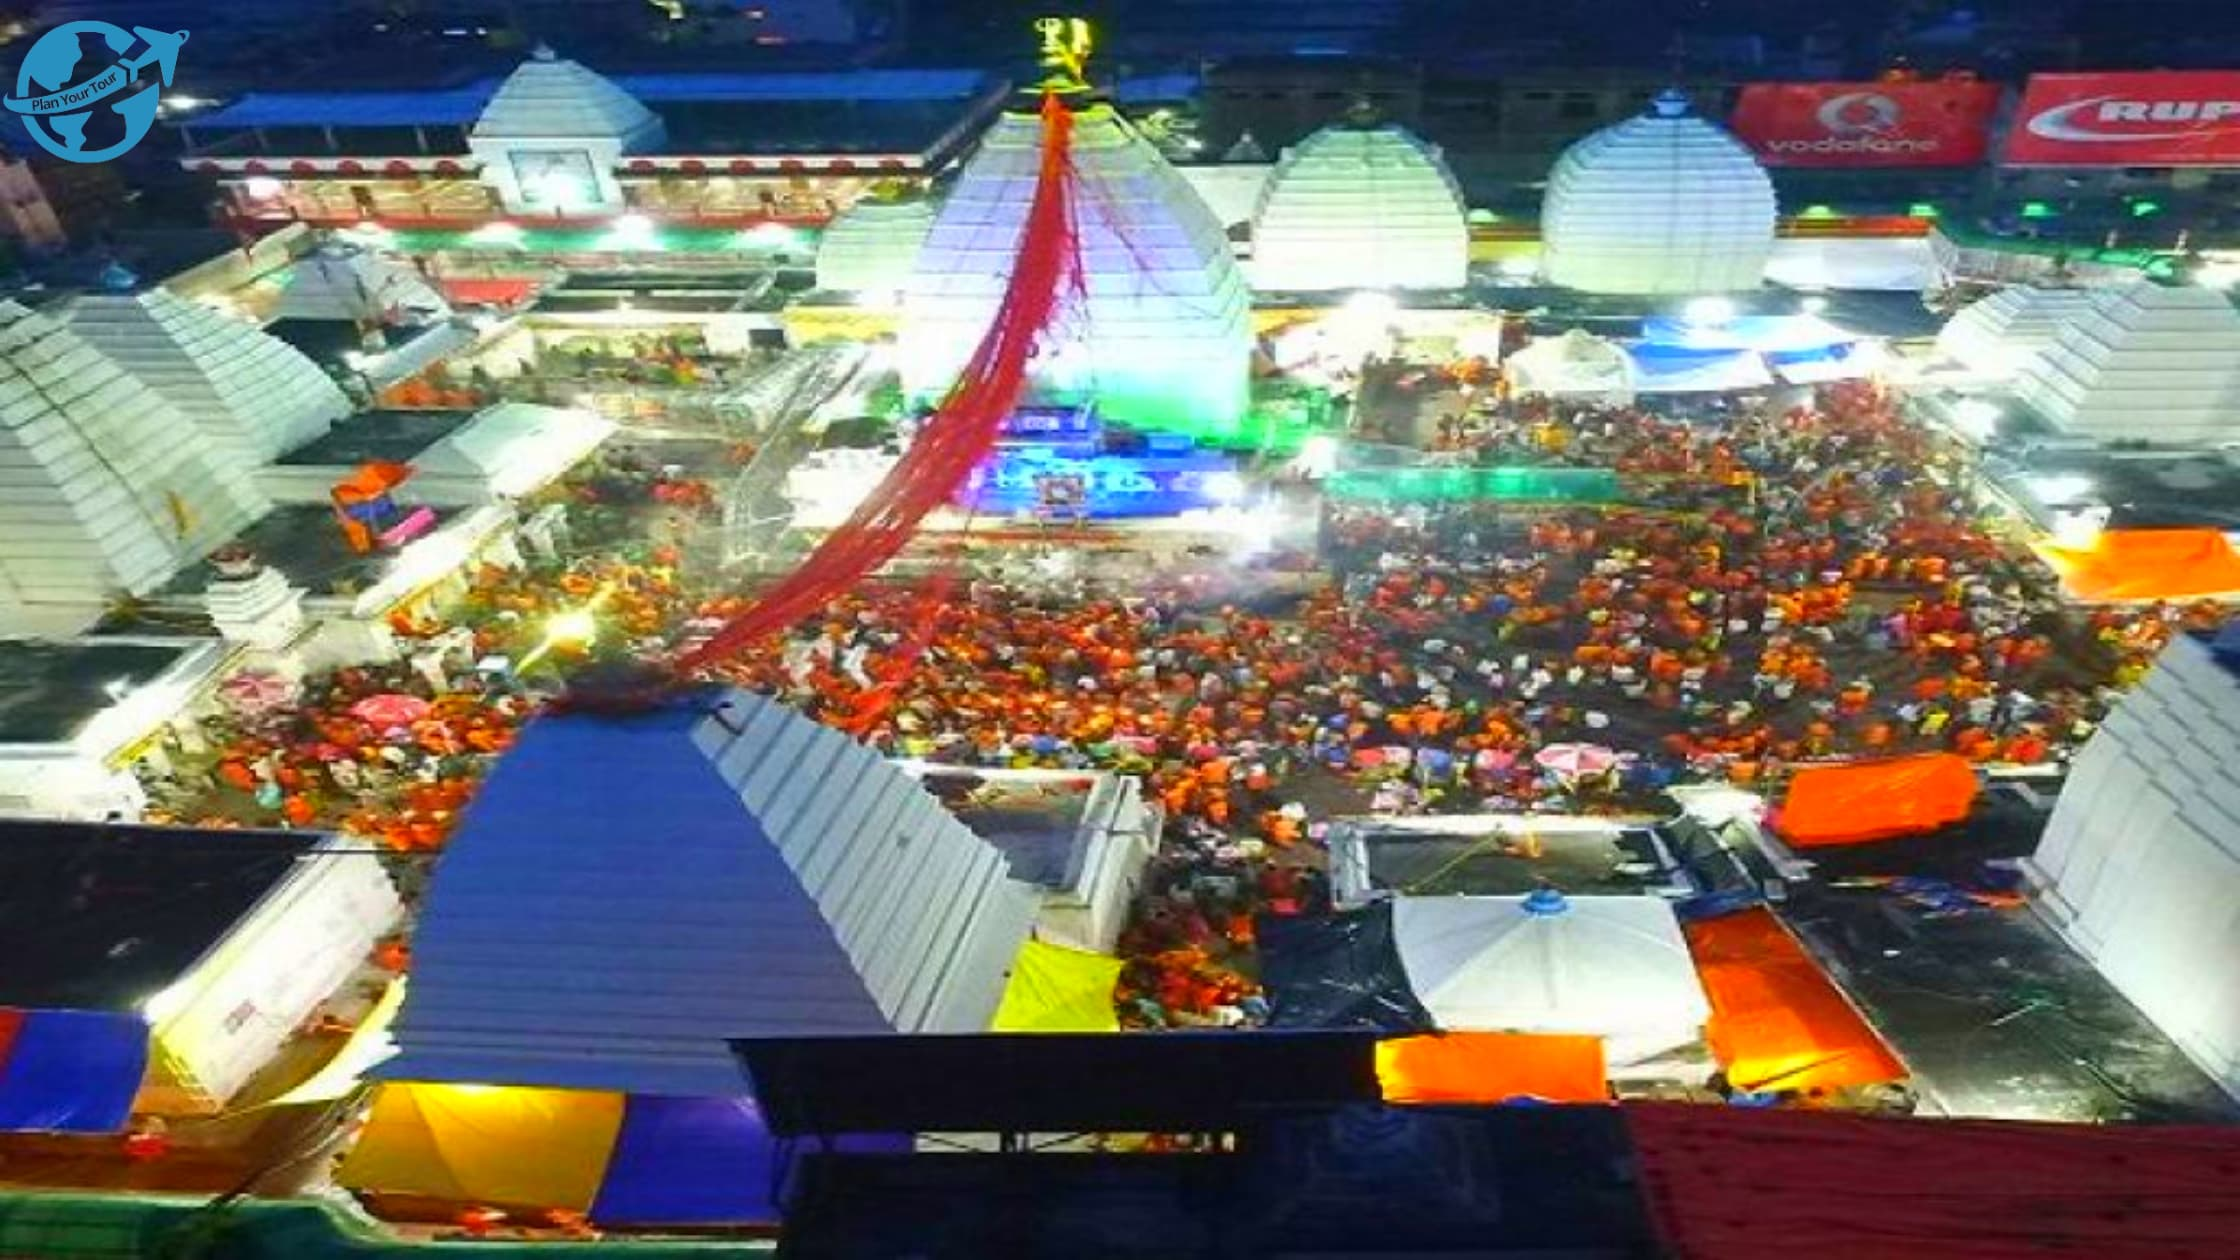 Baba Baidhnath Dham,best place to visit in Deoghar,Jharkhand